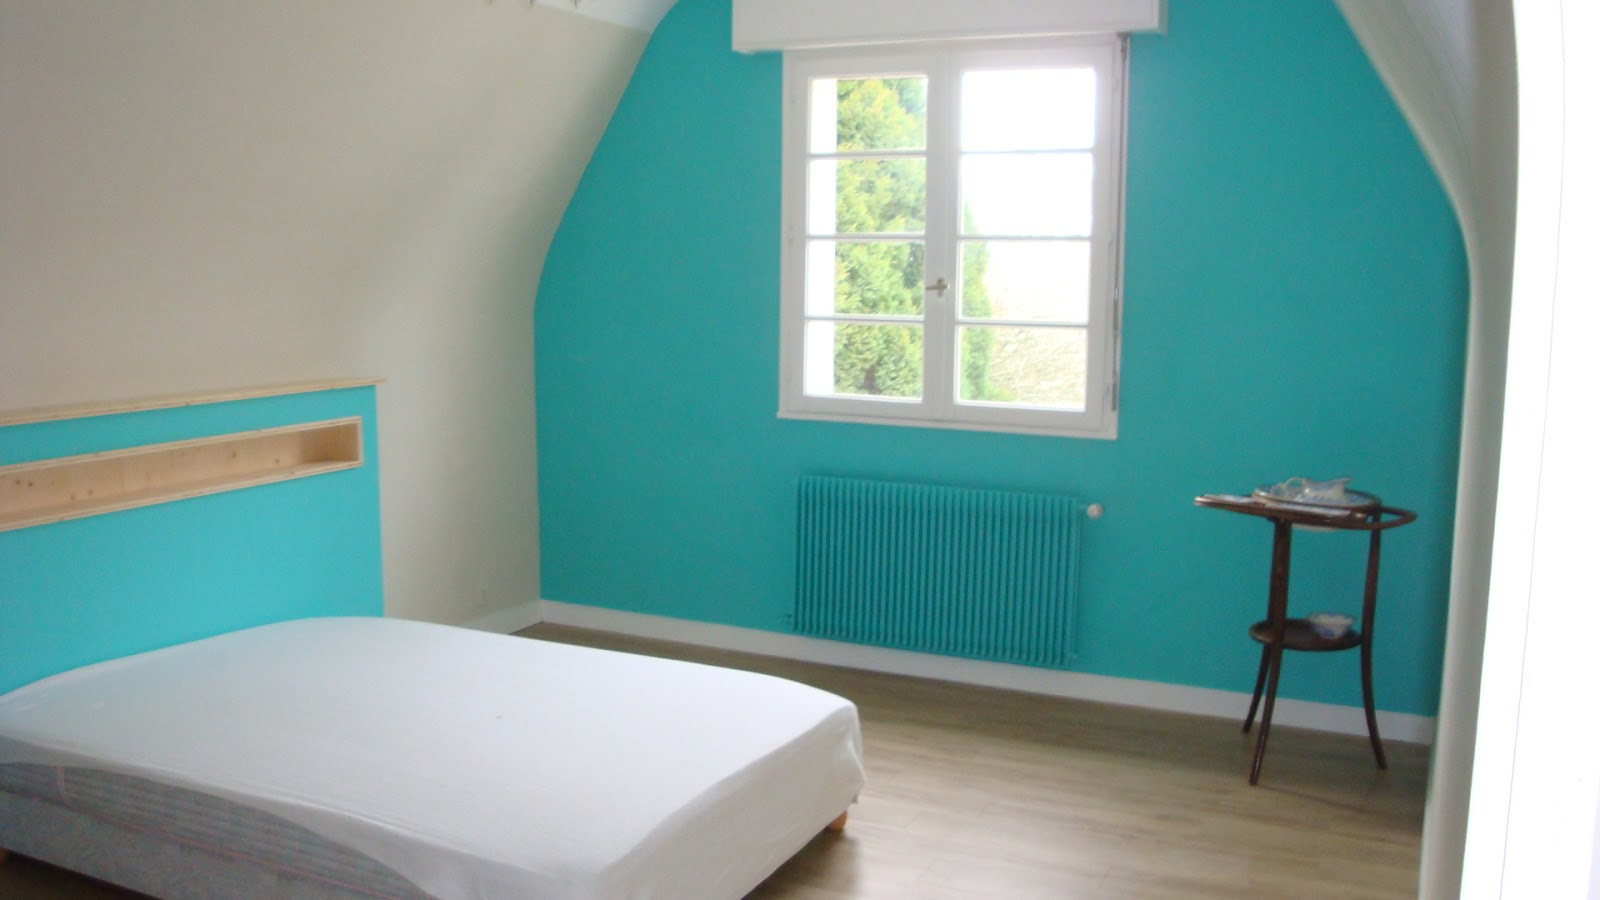 michel le coz agencement d coration chambre et t te de lit turquoise. Black Bedroom Furniture Sets. Home Design Ideas